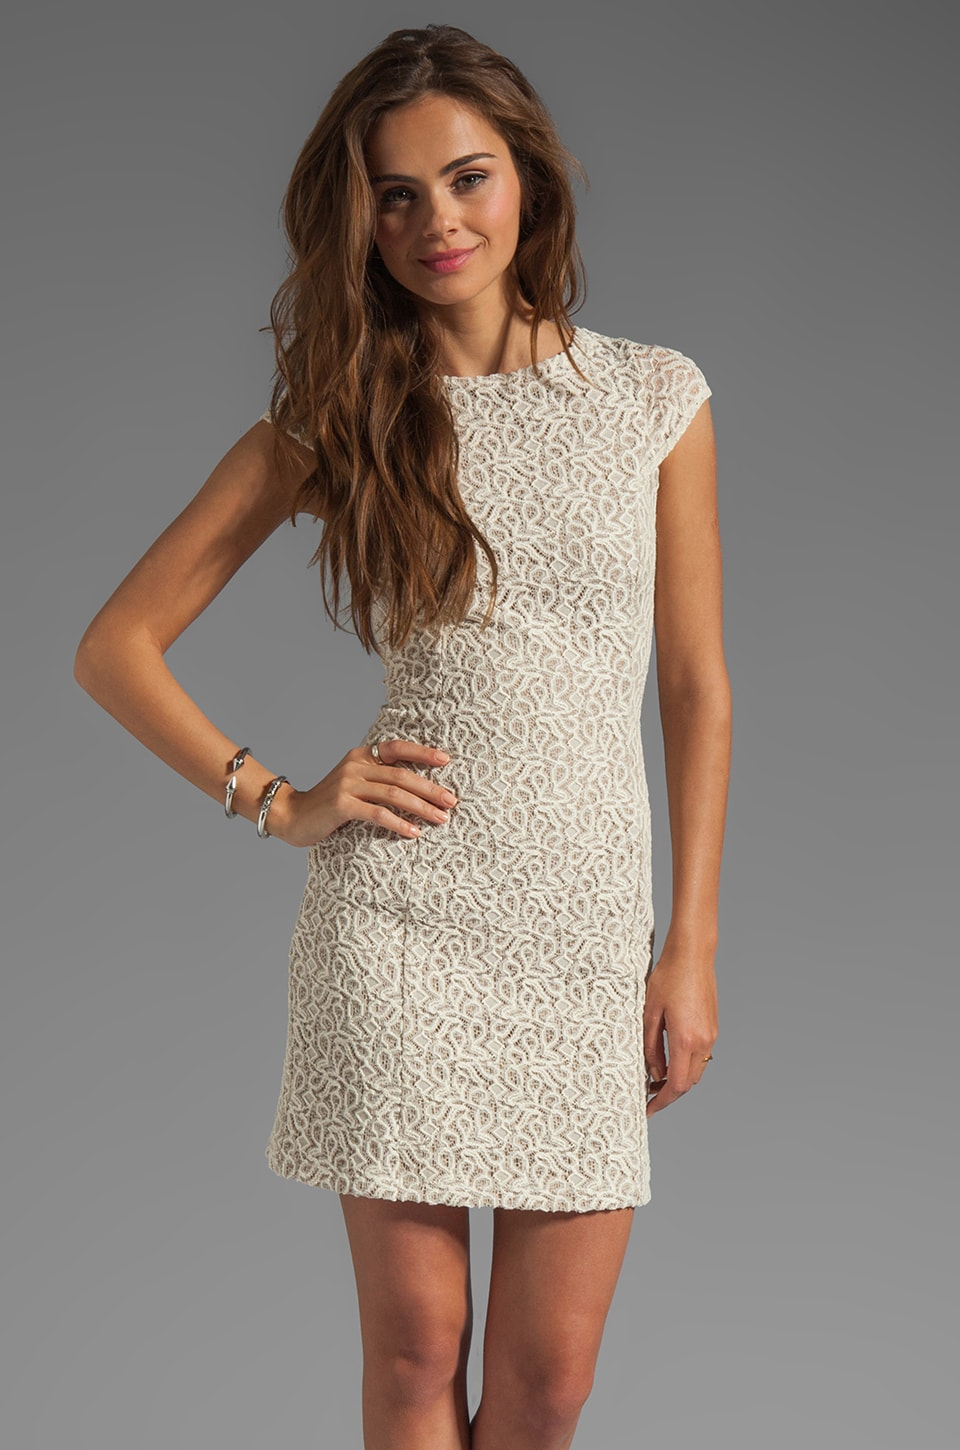 Kain Lace Goldie Dress in Natural